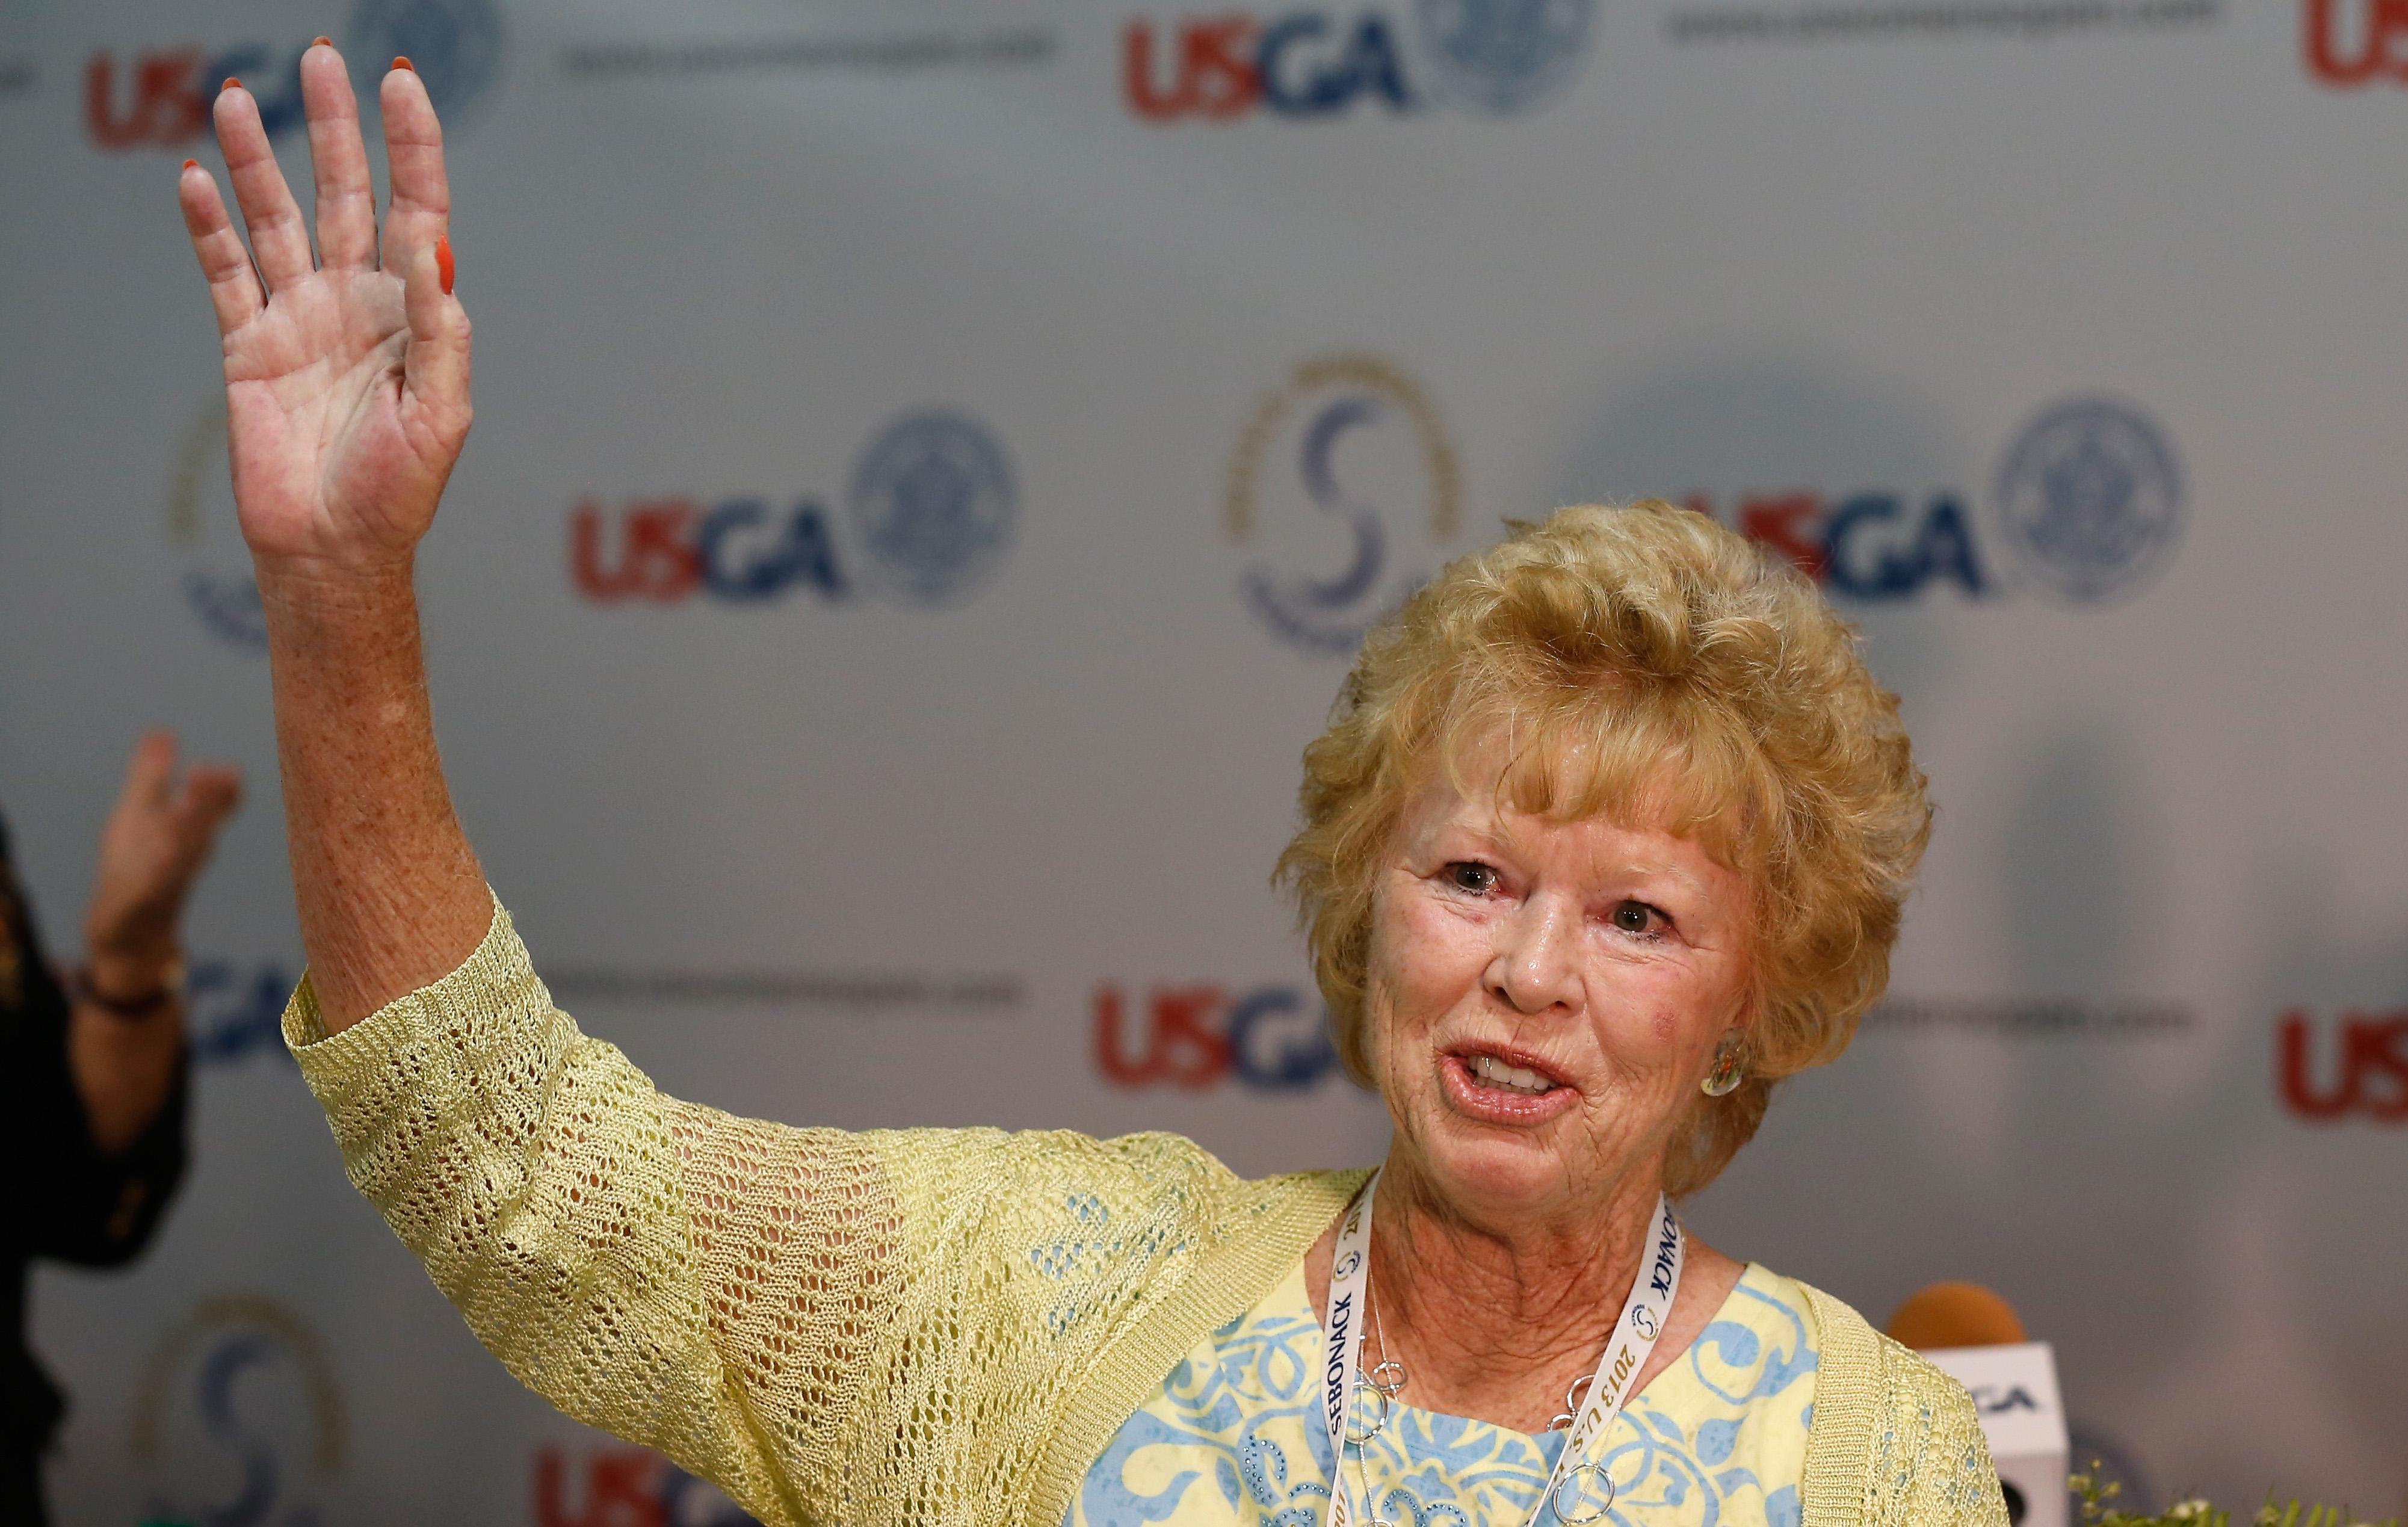 Rhonda Glenn, 67, who retired in May after nearly 50 years as a journalist and an employee of the United States Golf Association. waves to friends and the media prior to the start of the 2013 U.S. Women's Open.